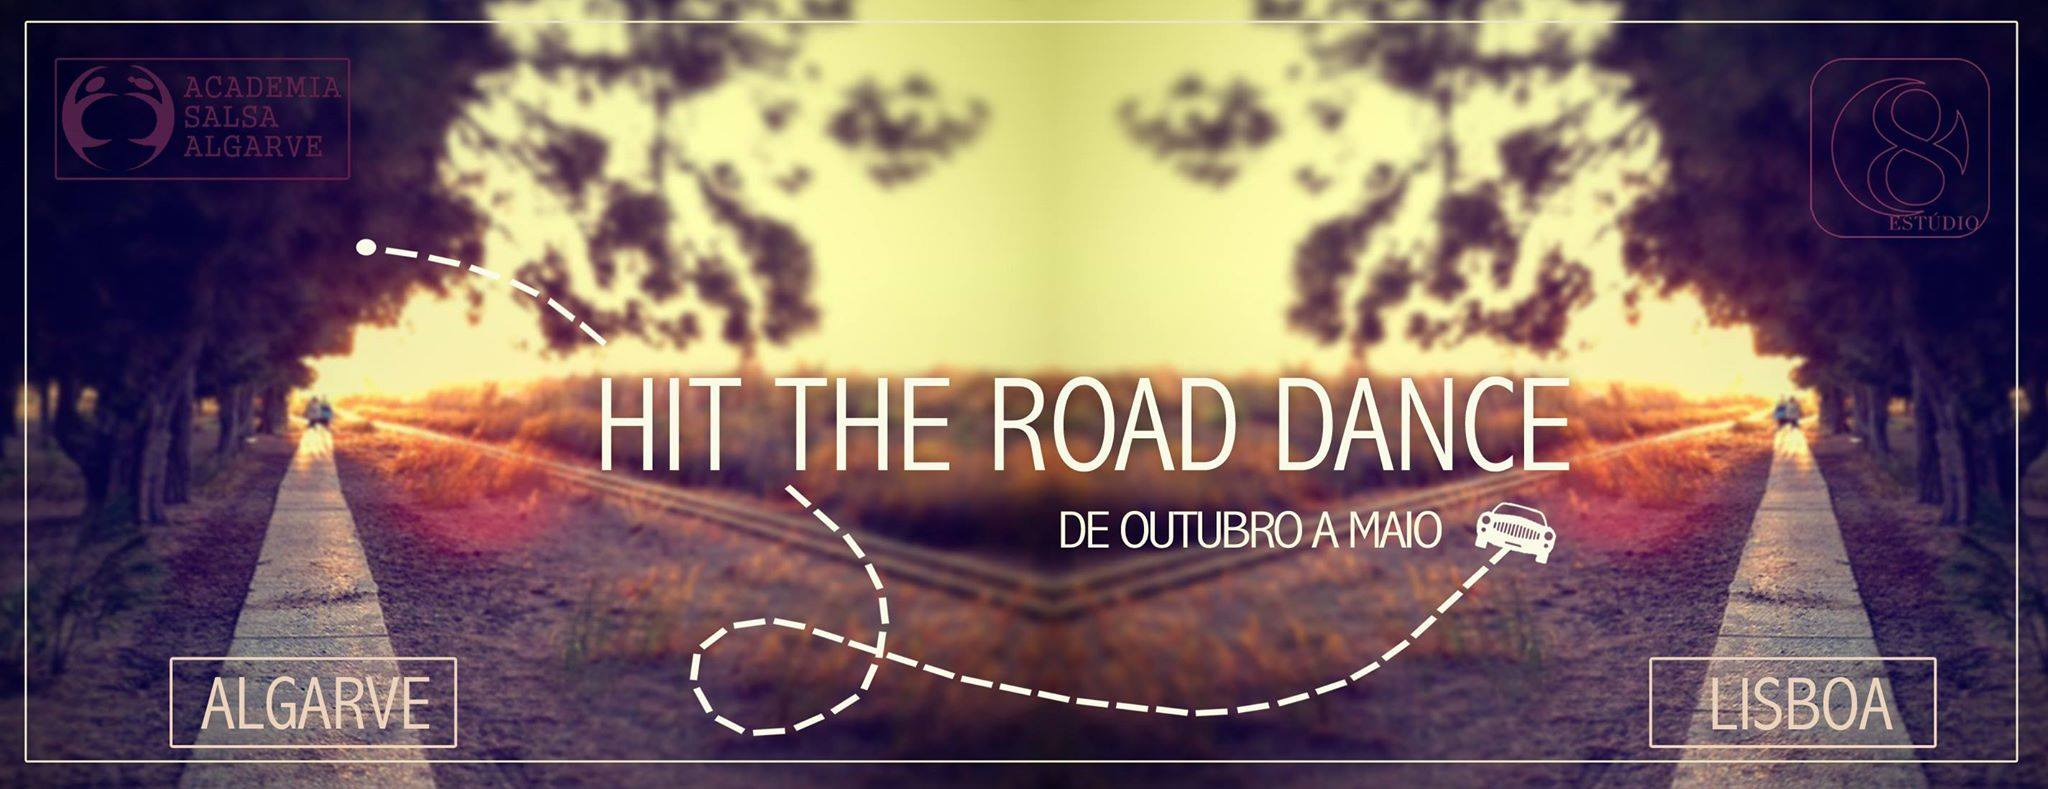 Hit the road - Dance Salsa, Bachata, Tango, Roda de Casino